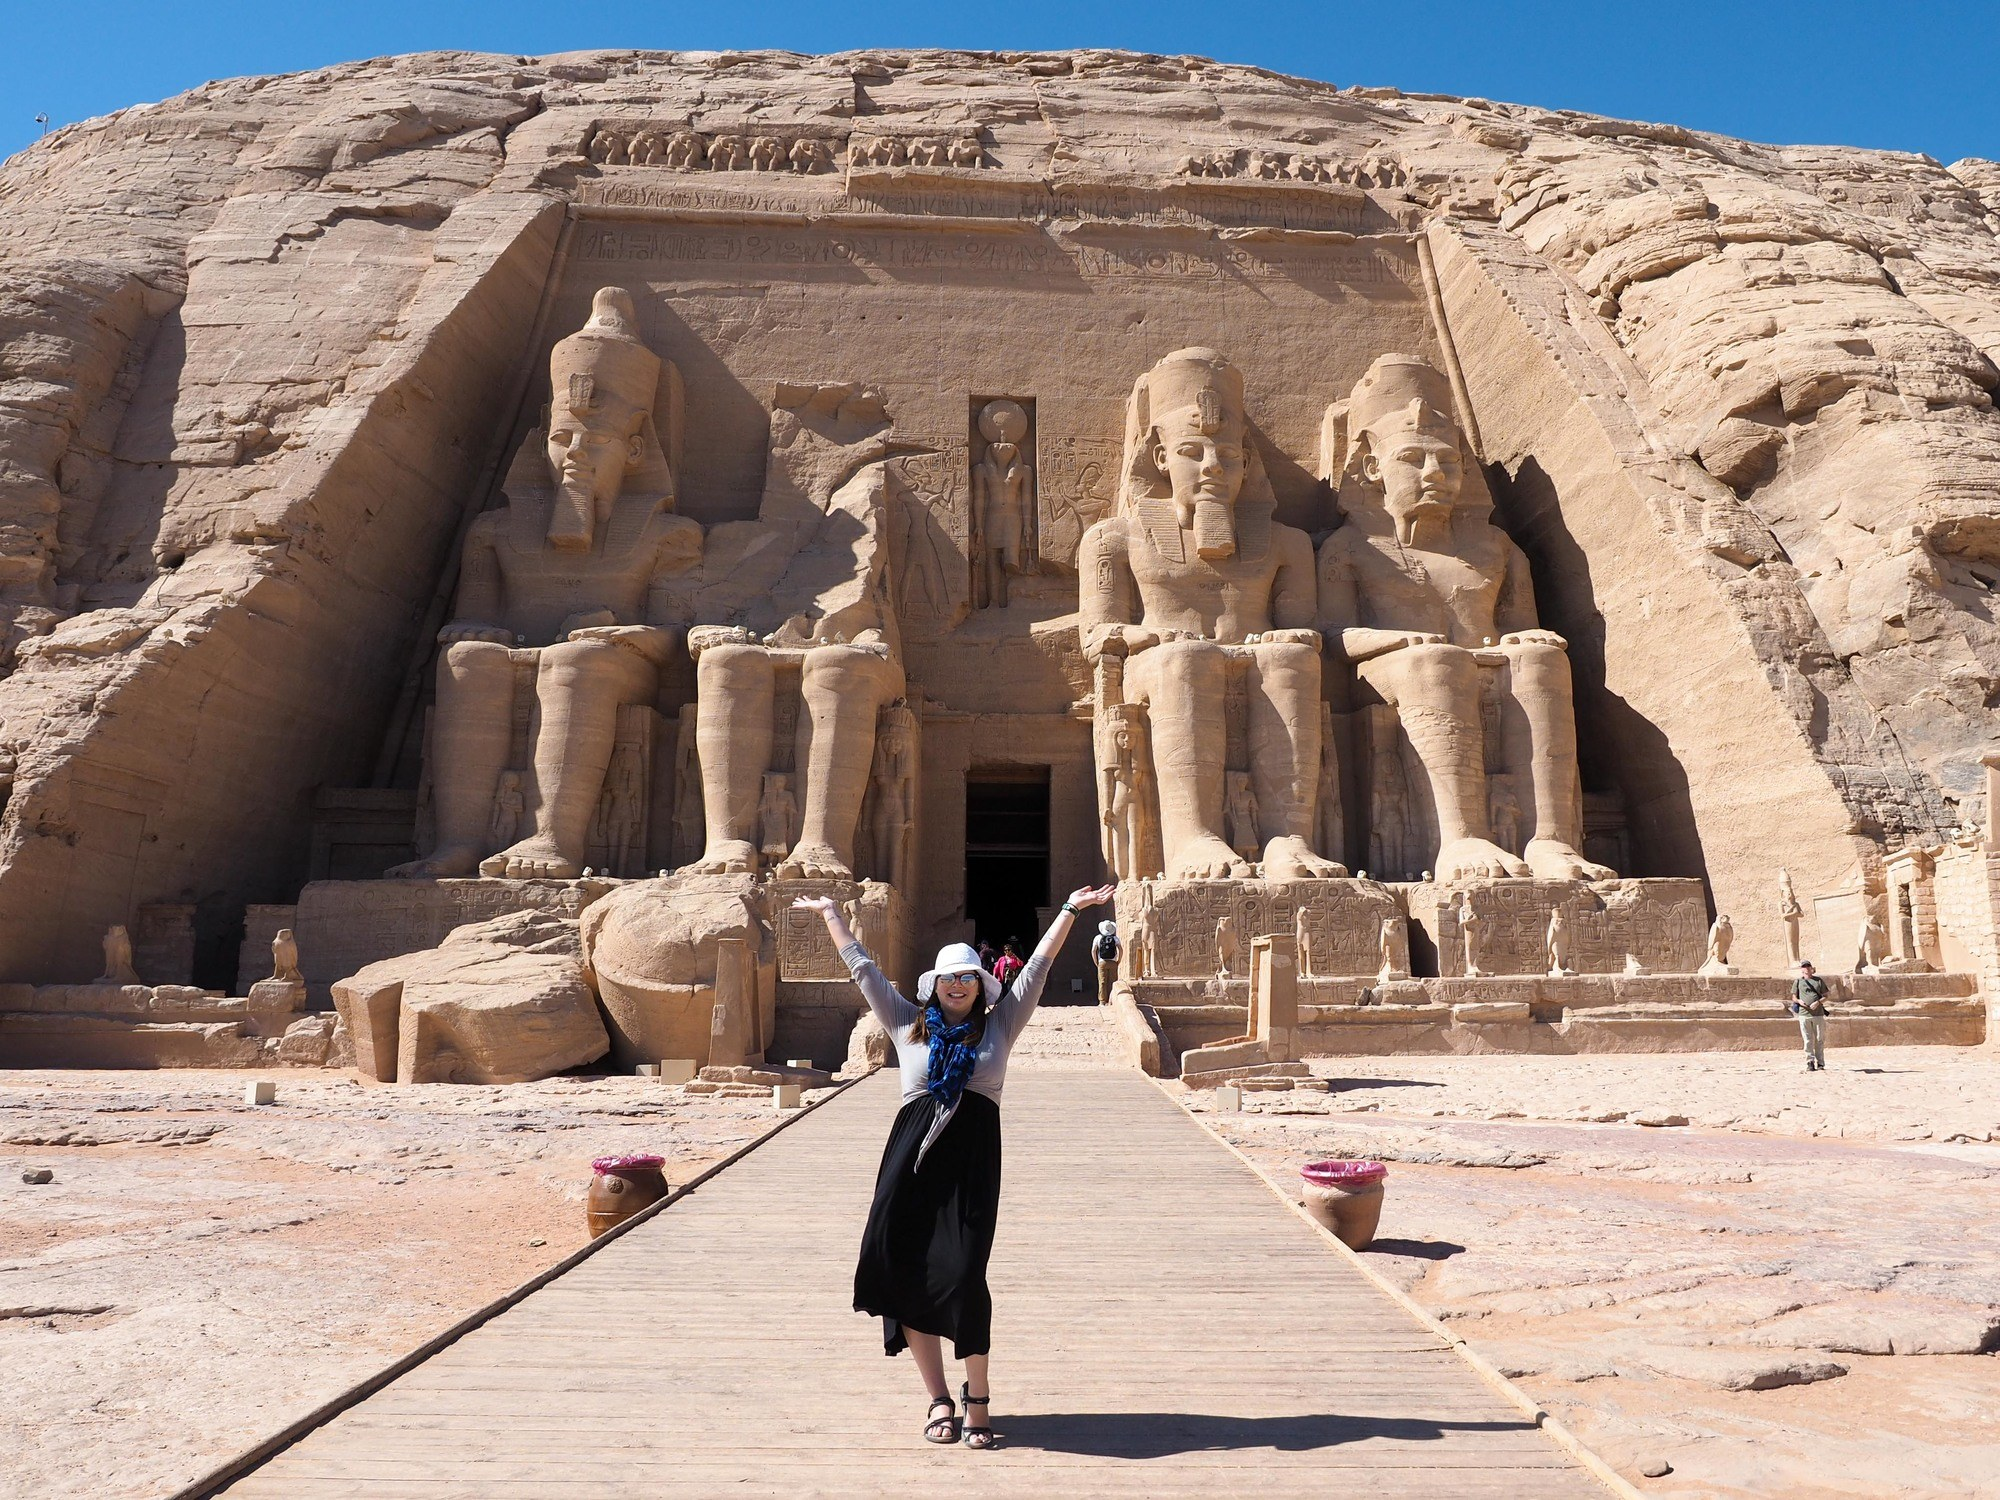 Egypt Experience Tour: Traveling Safely In Egypt With